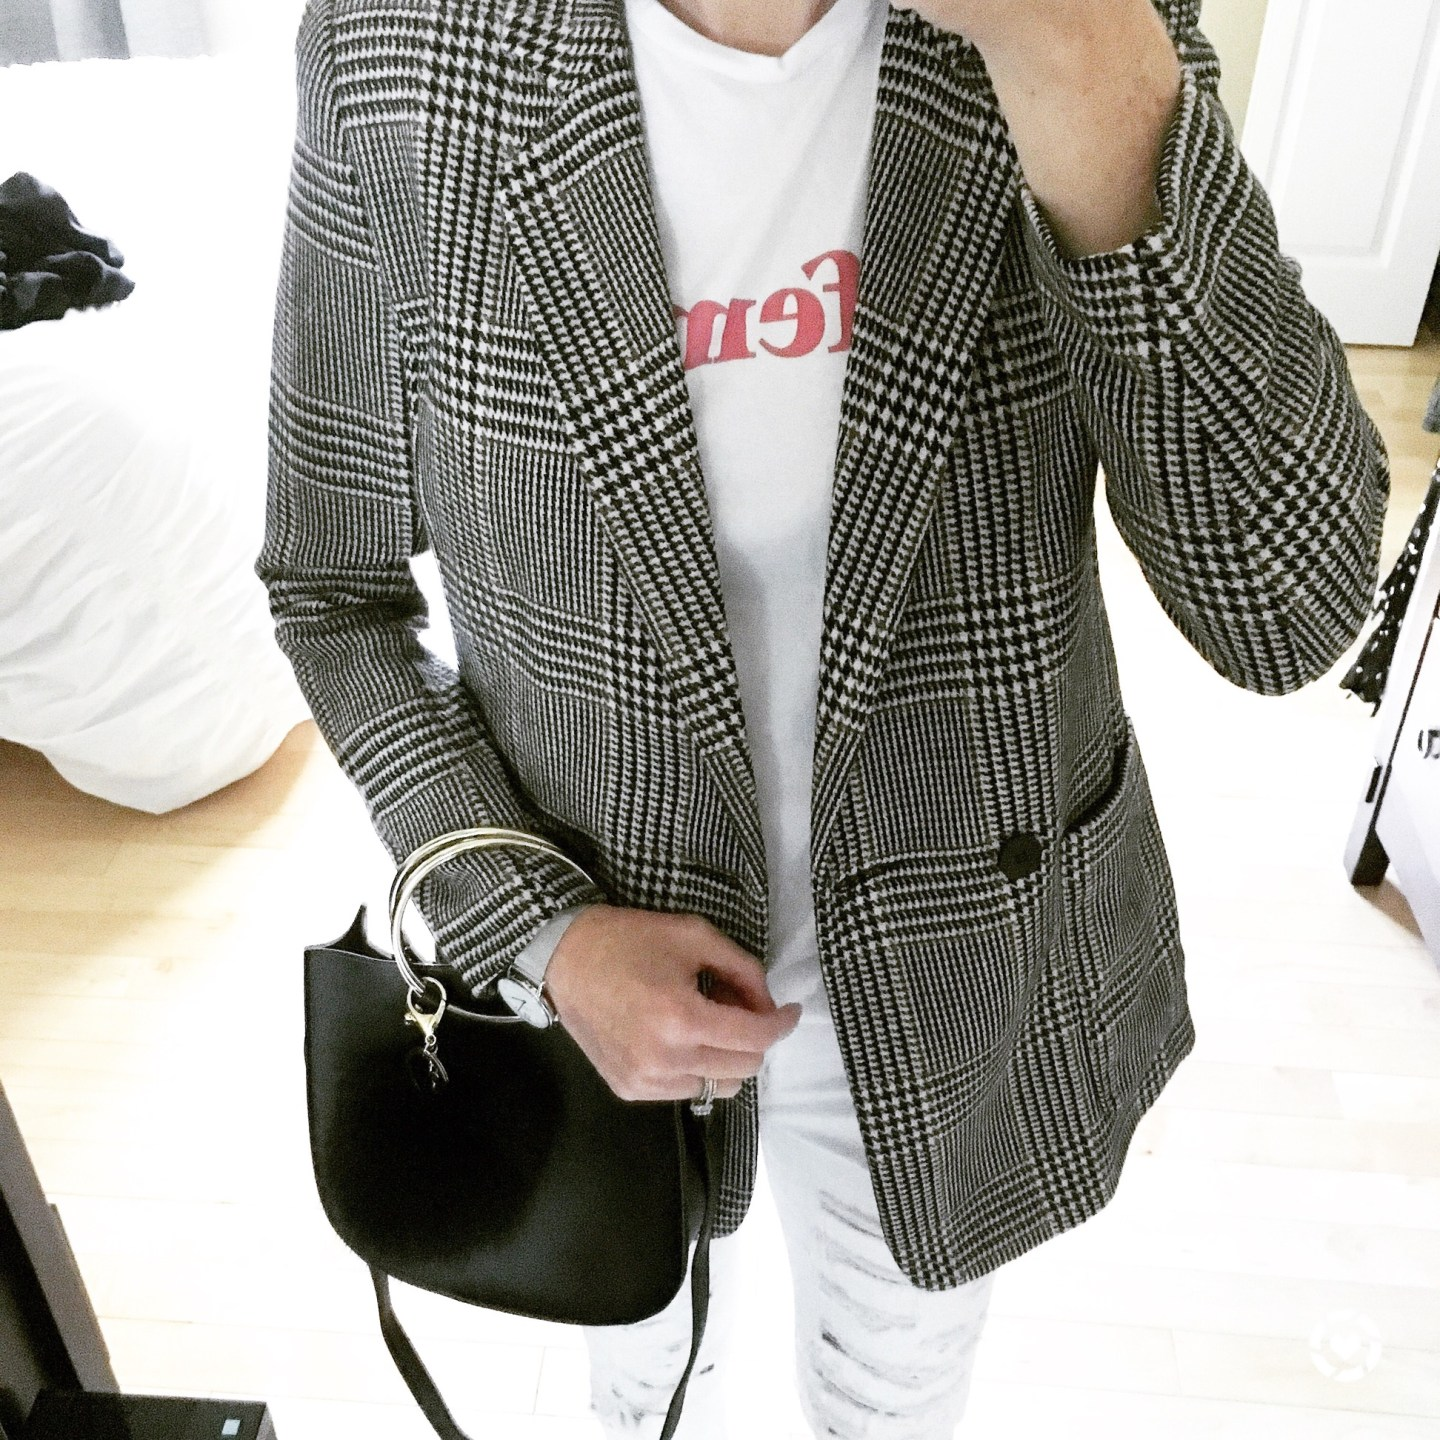 fall-fashion-my-favorite-fall-trend-the-plaid-blazer-life-lately-instagram-behind-the-scenes-falling-for-fall-fall-sales